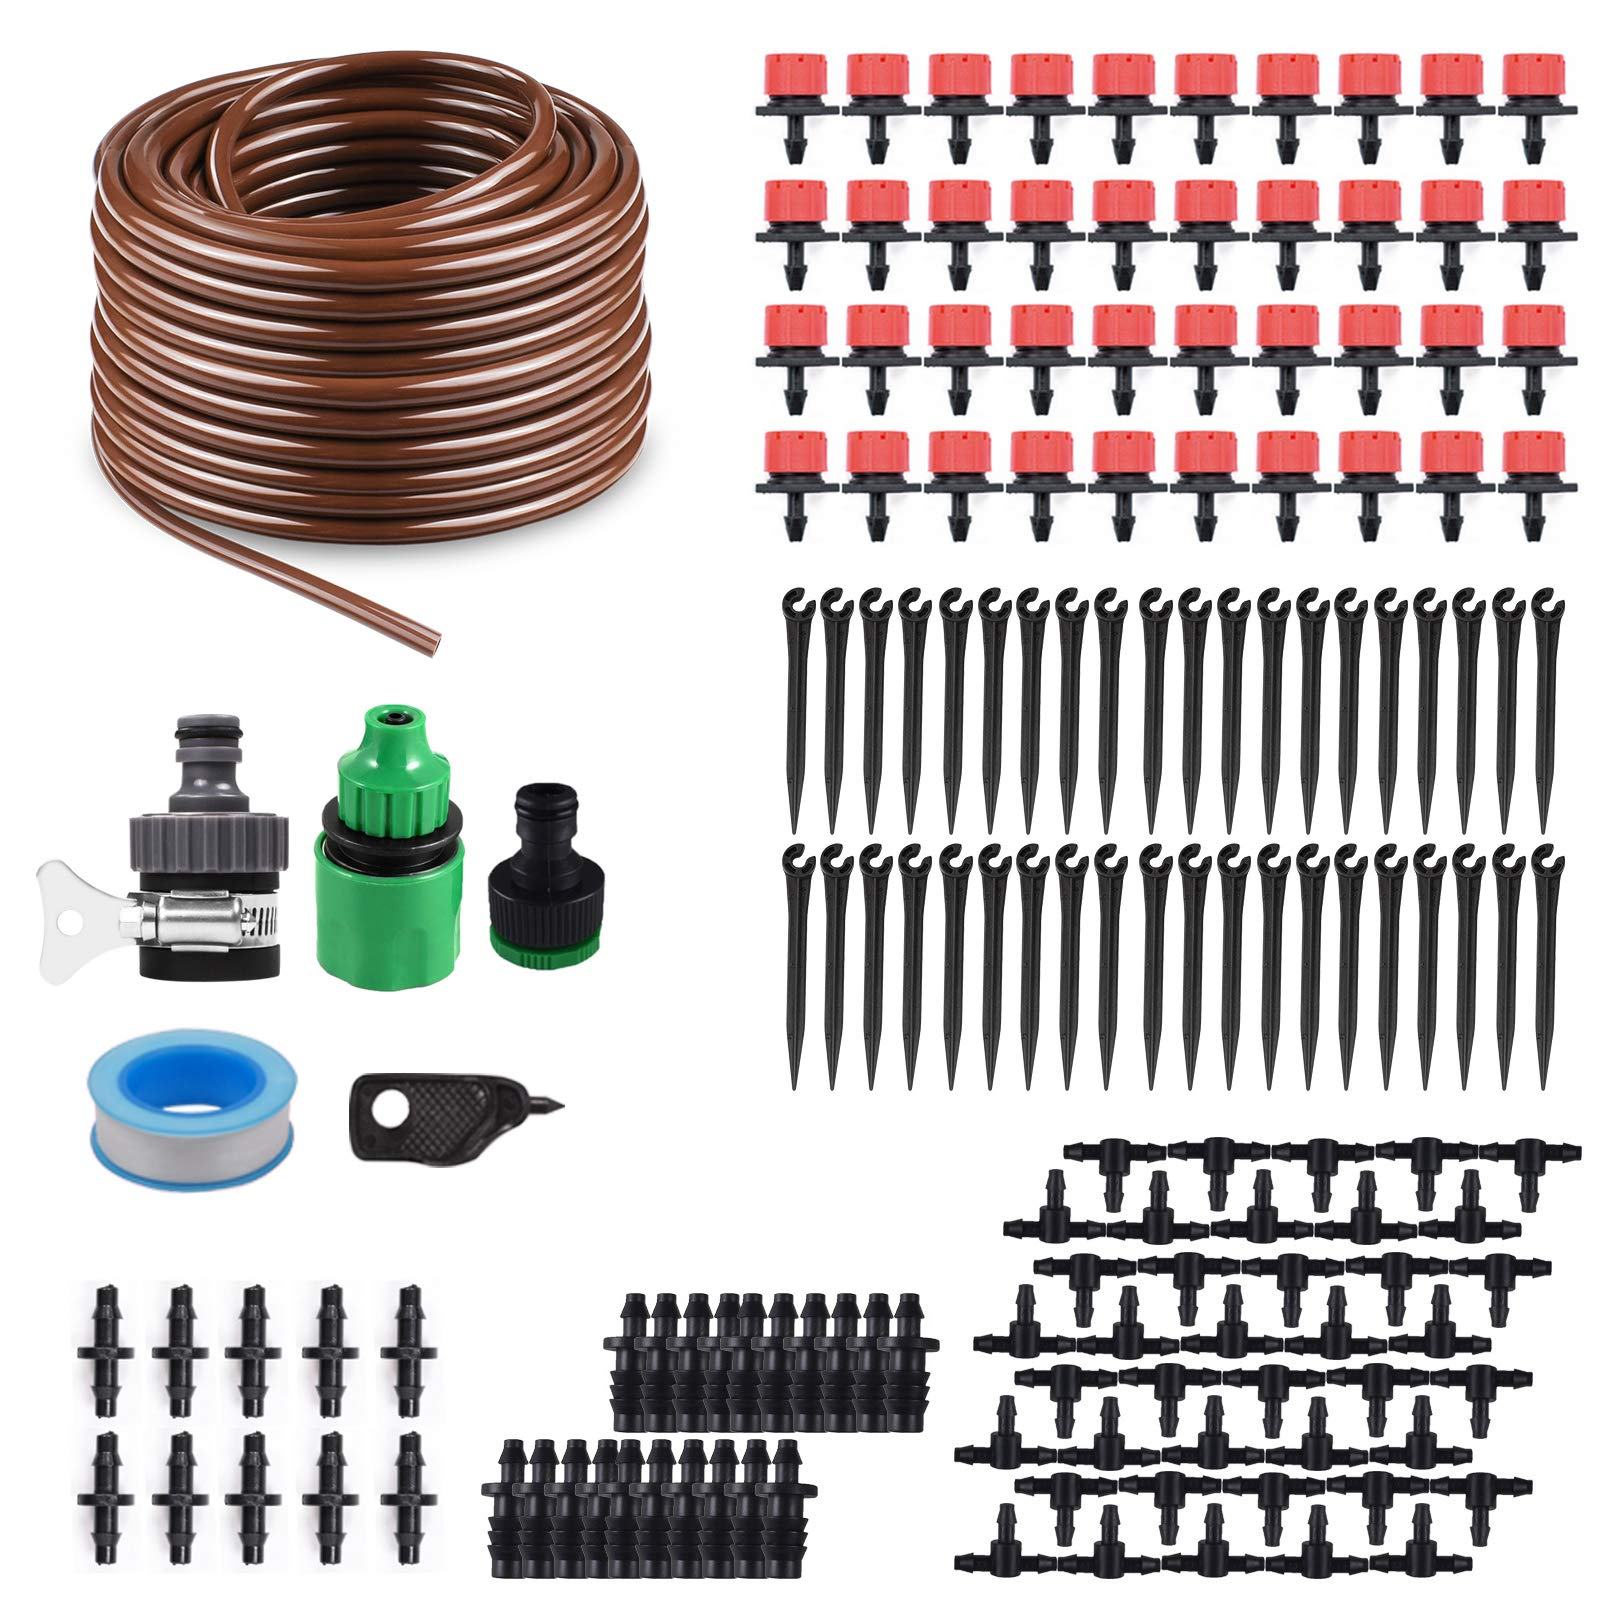 Koram irrigation kit with all accessories